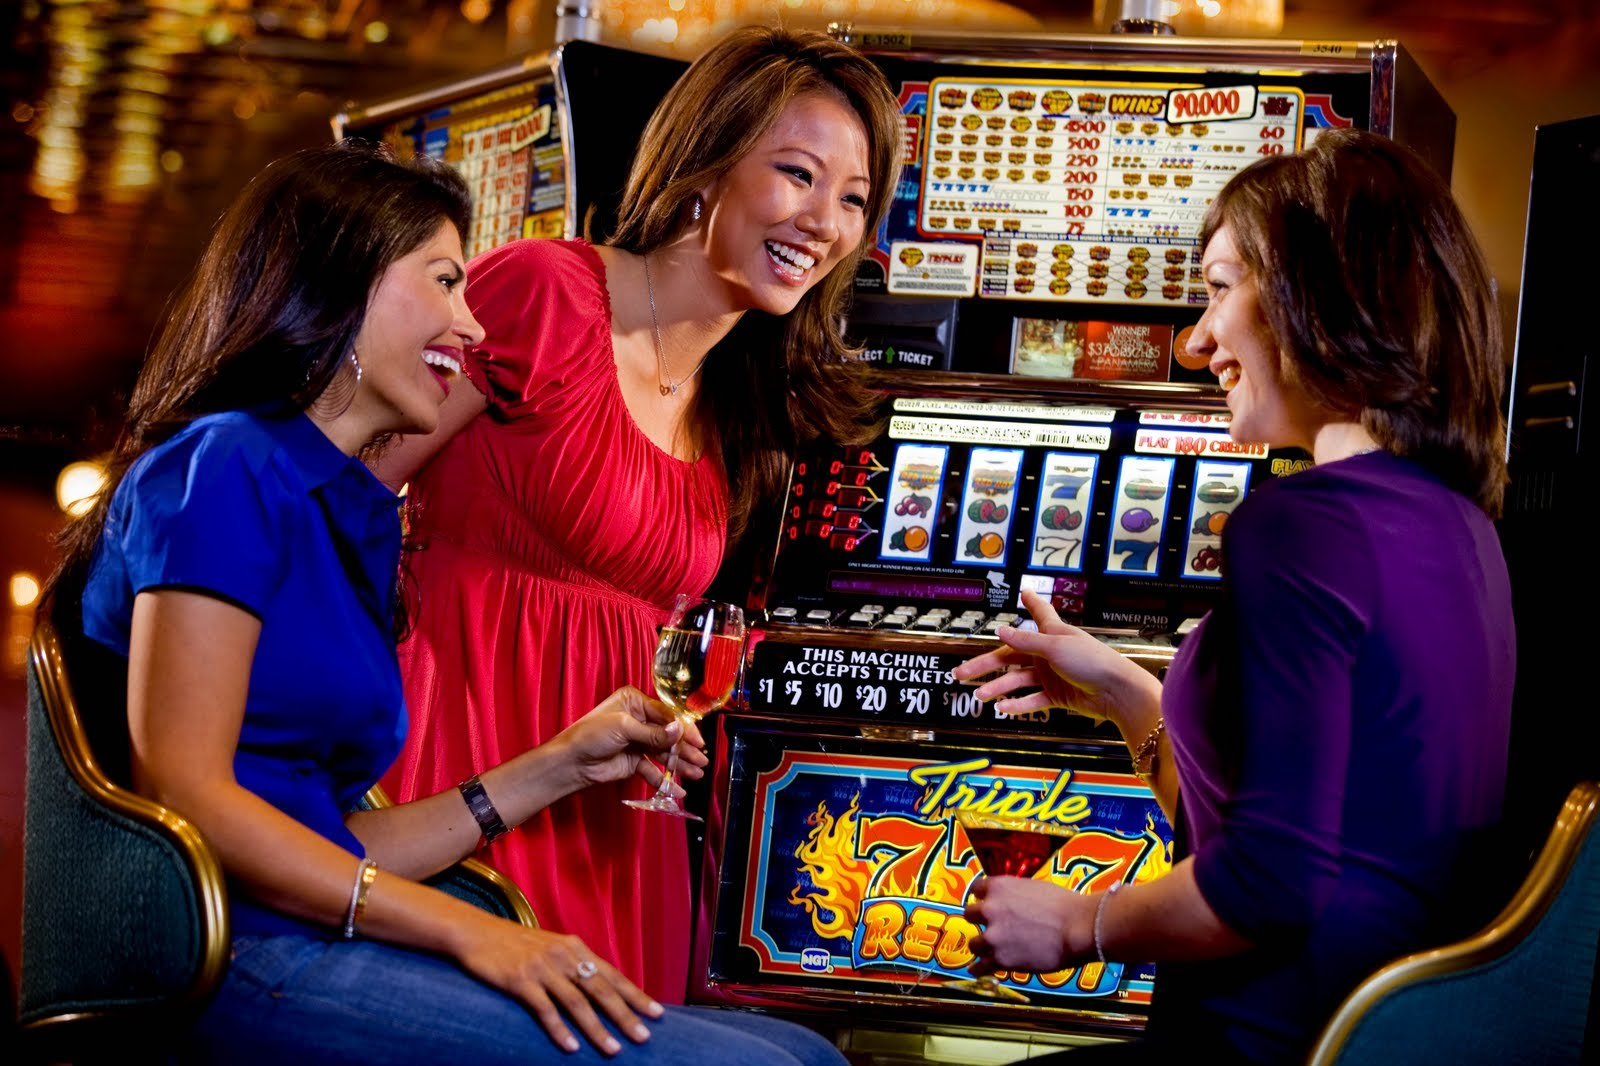 Get Free Spins on Slots - win REAL money on online casinos